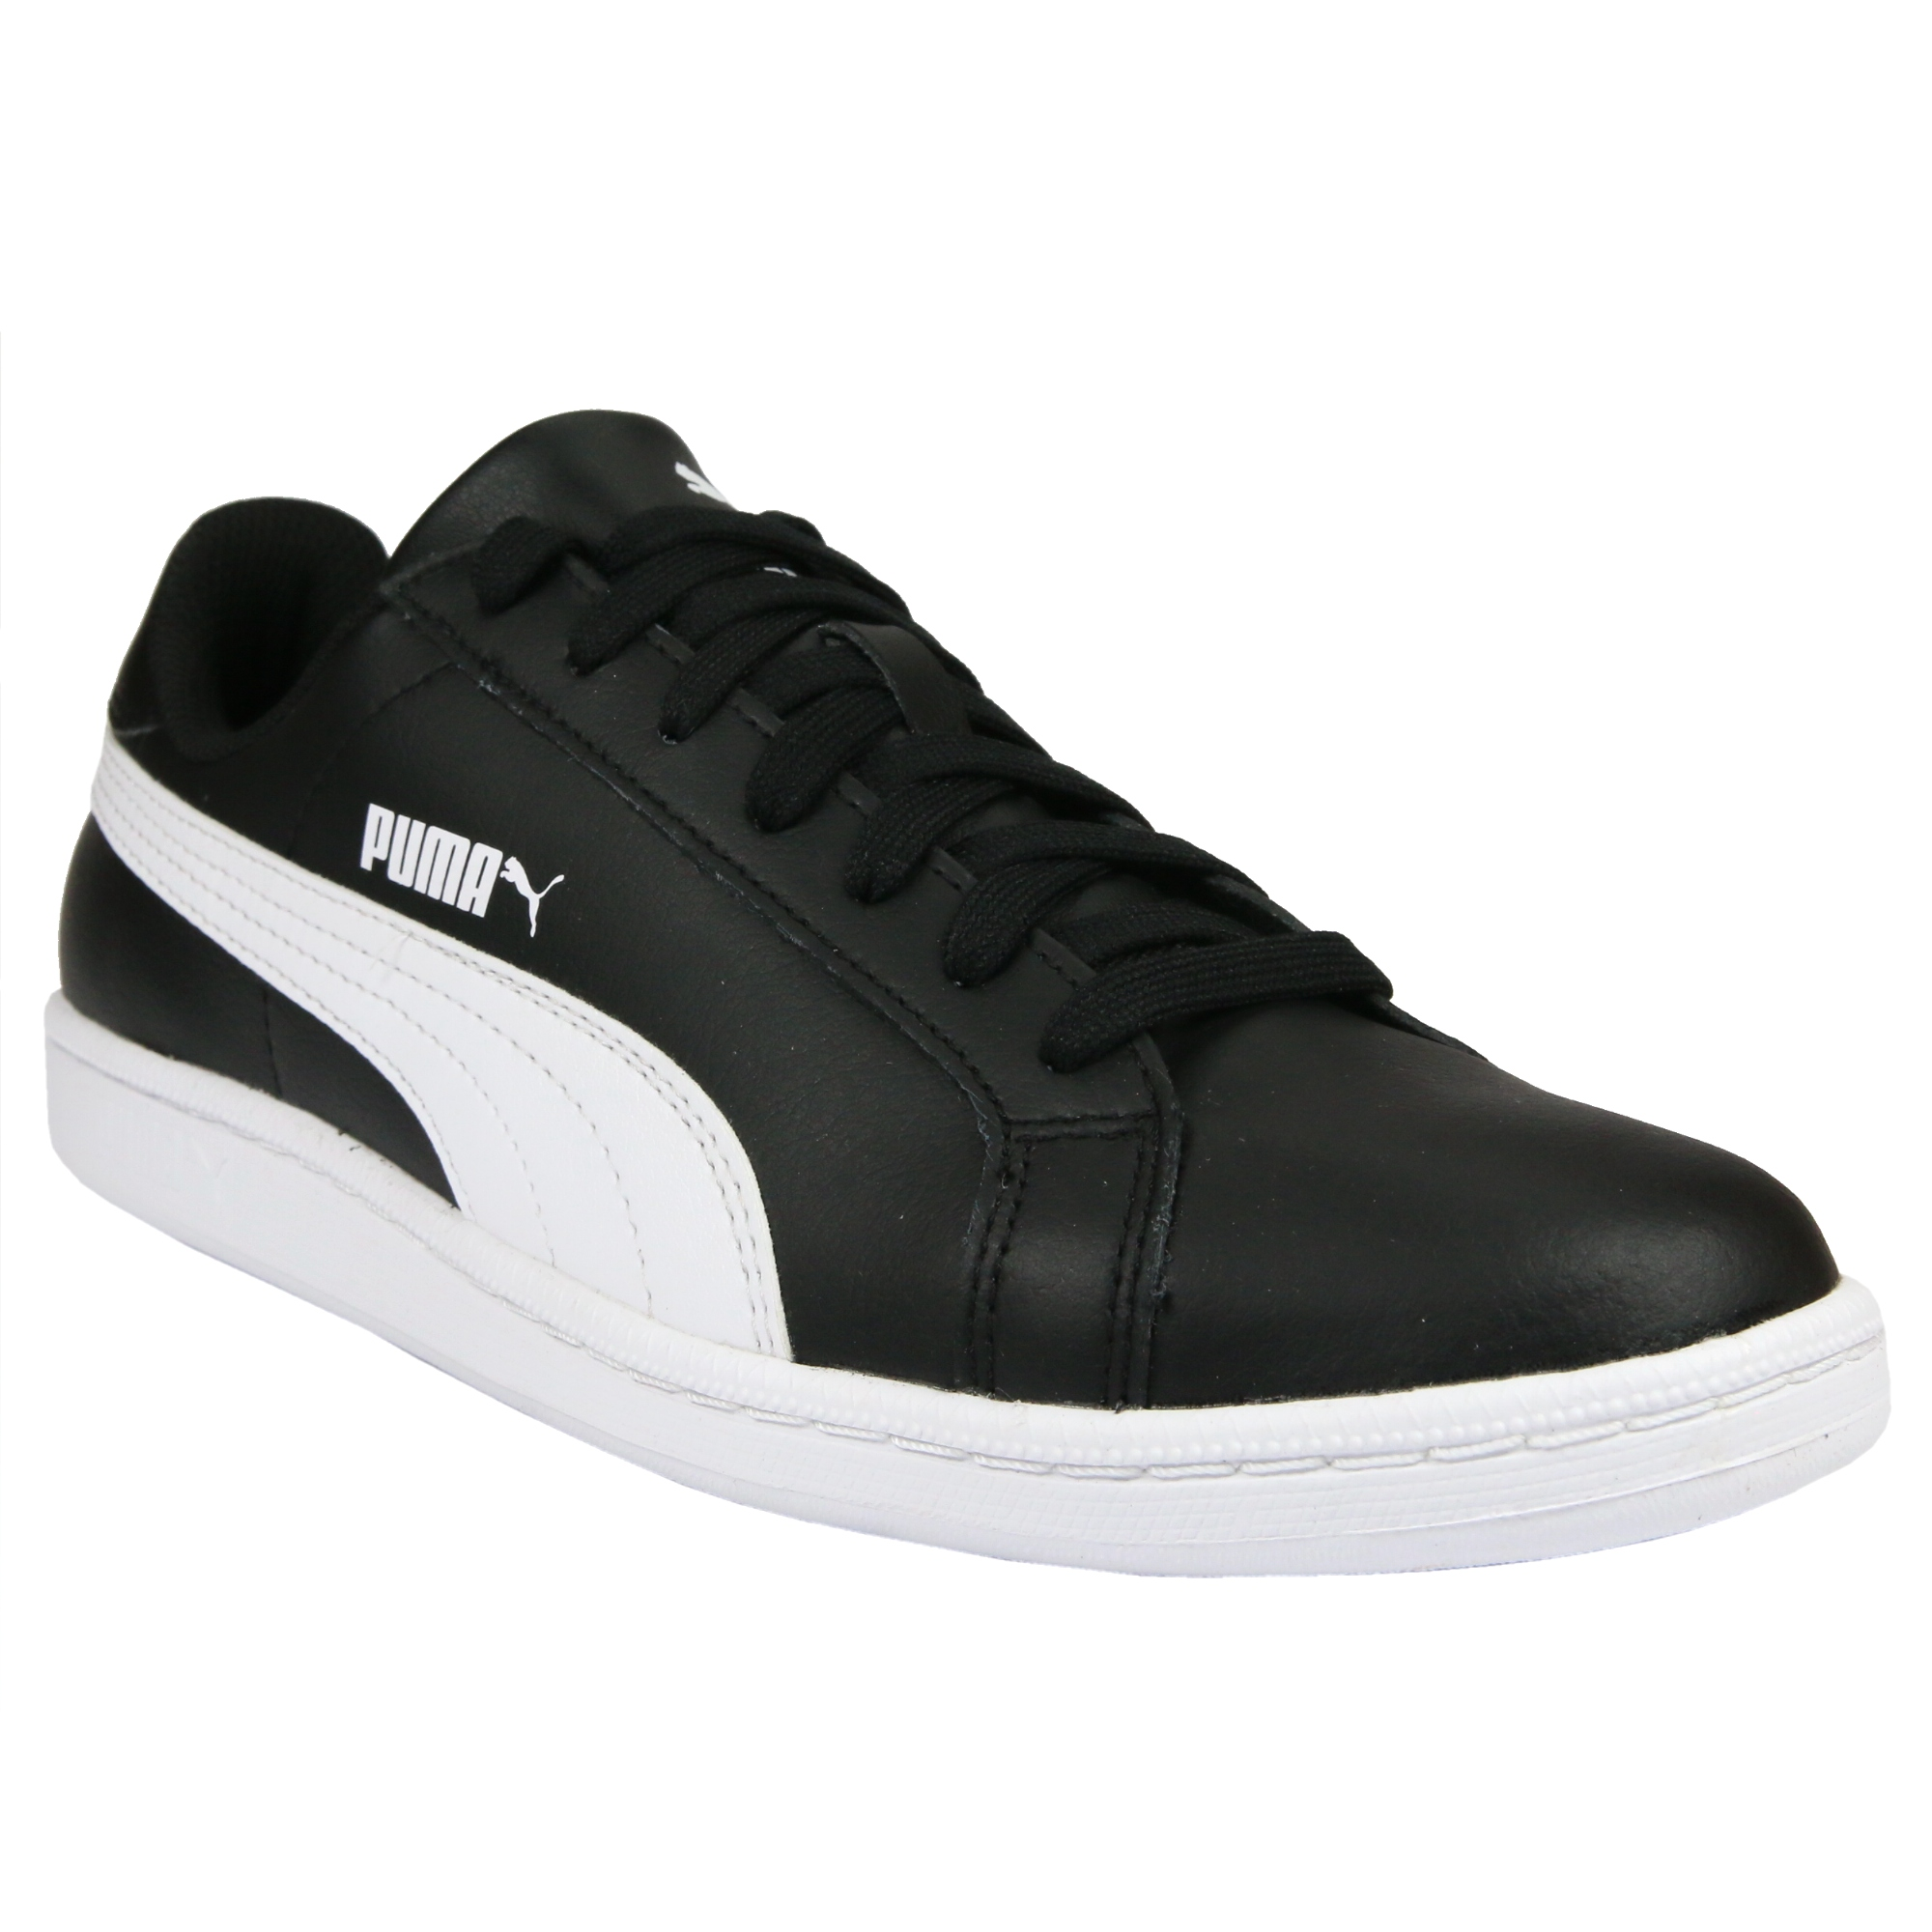 puma smash l schuhe turnschuhe sneaker herren damen wei schwarz ebay. Black Bedroom Furniture Sets. Home Design Ideas